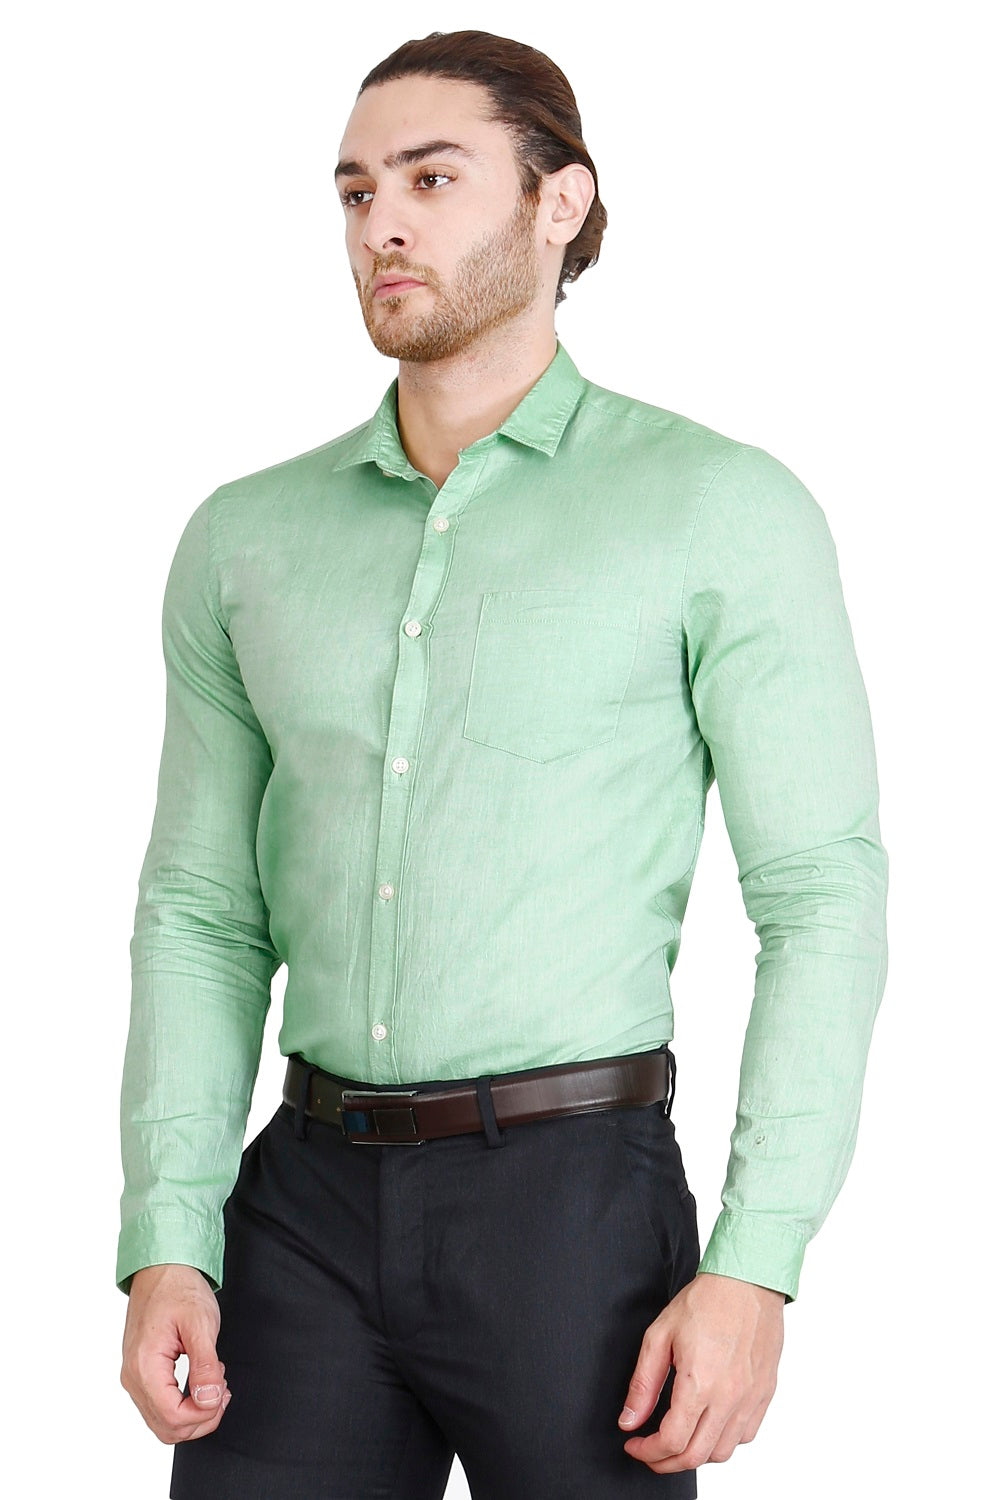 Green Solid Formal Full Sleeve Shirt